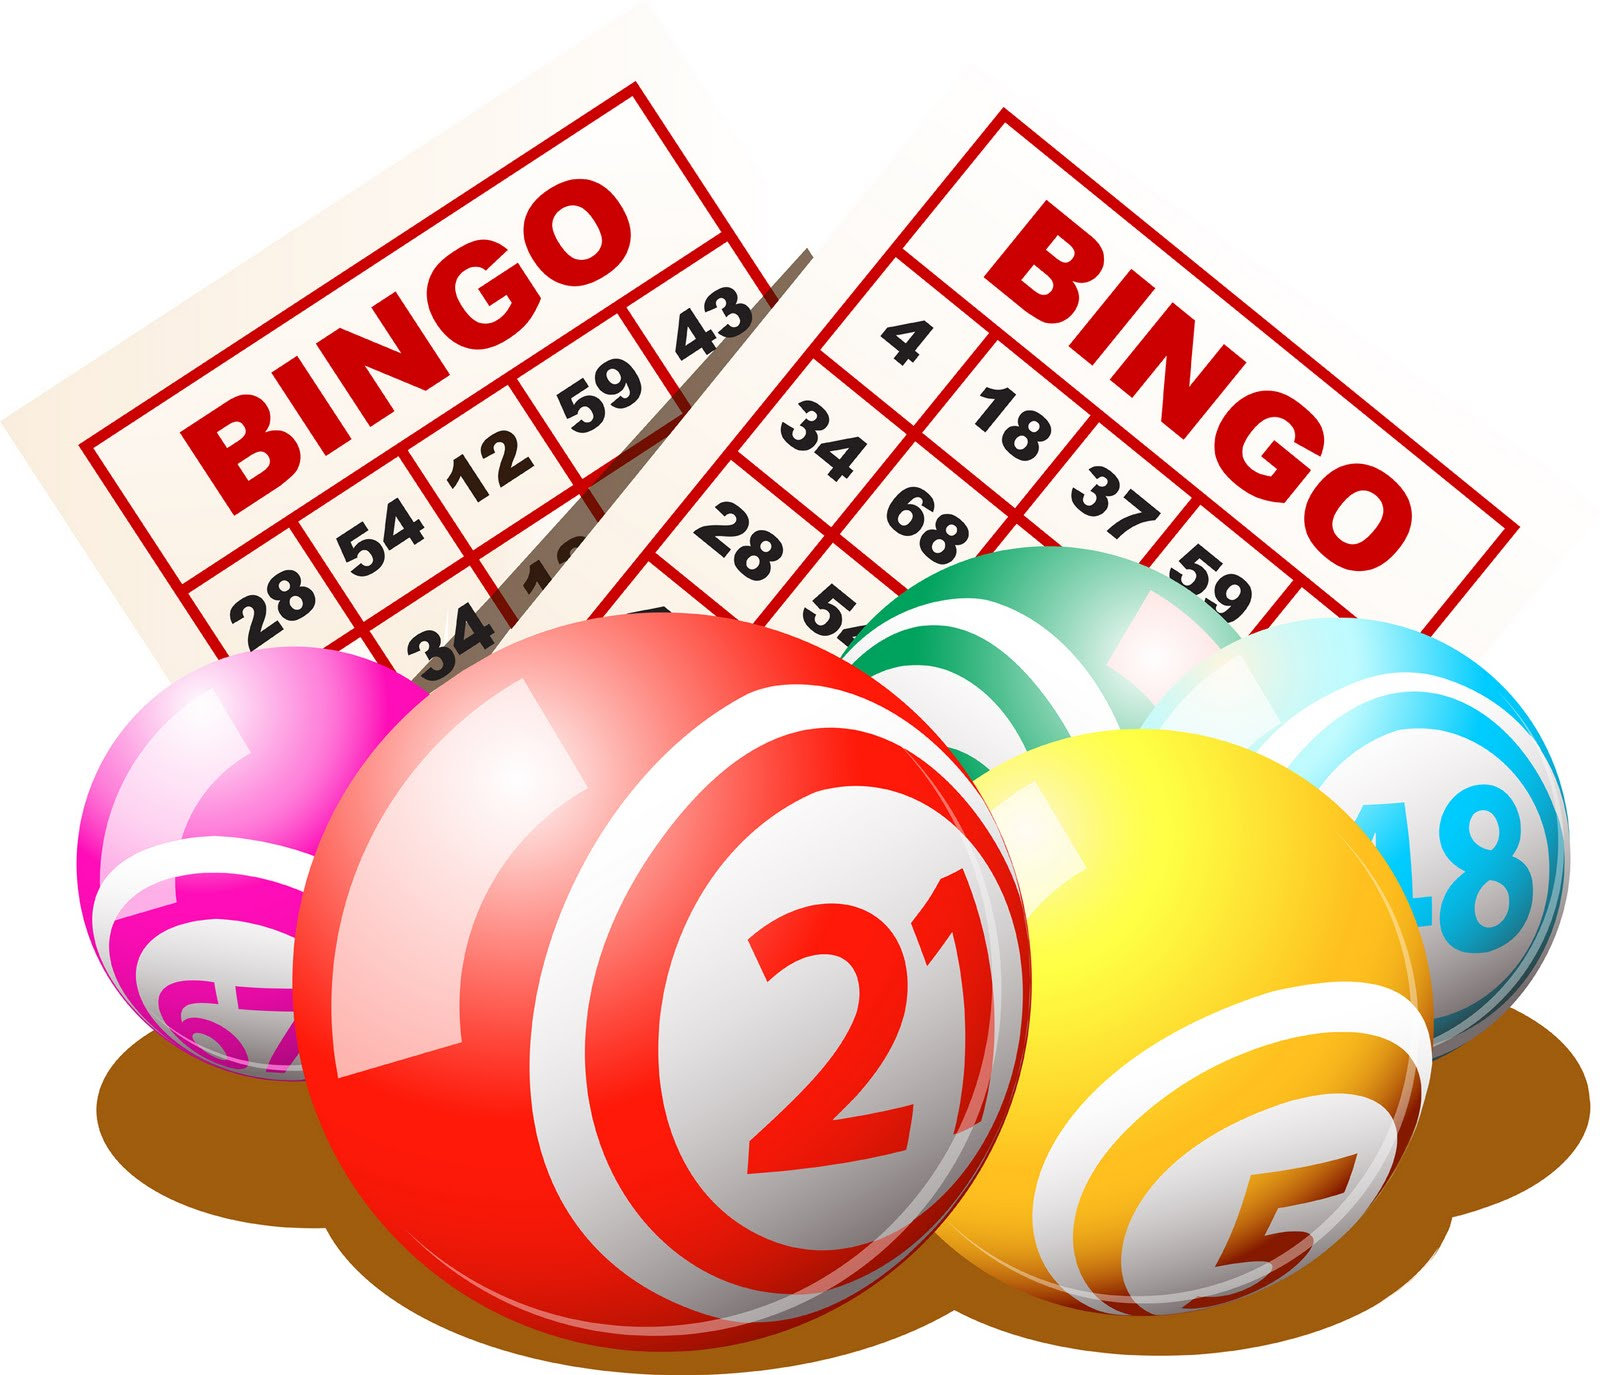 Bingo Flyers Templates | Party Invitations Ideas